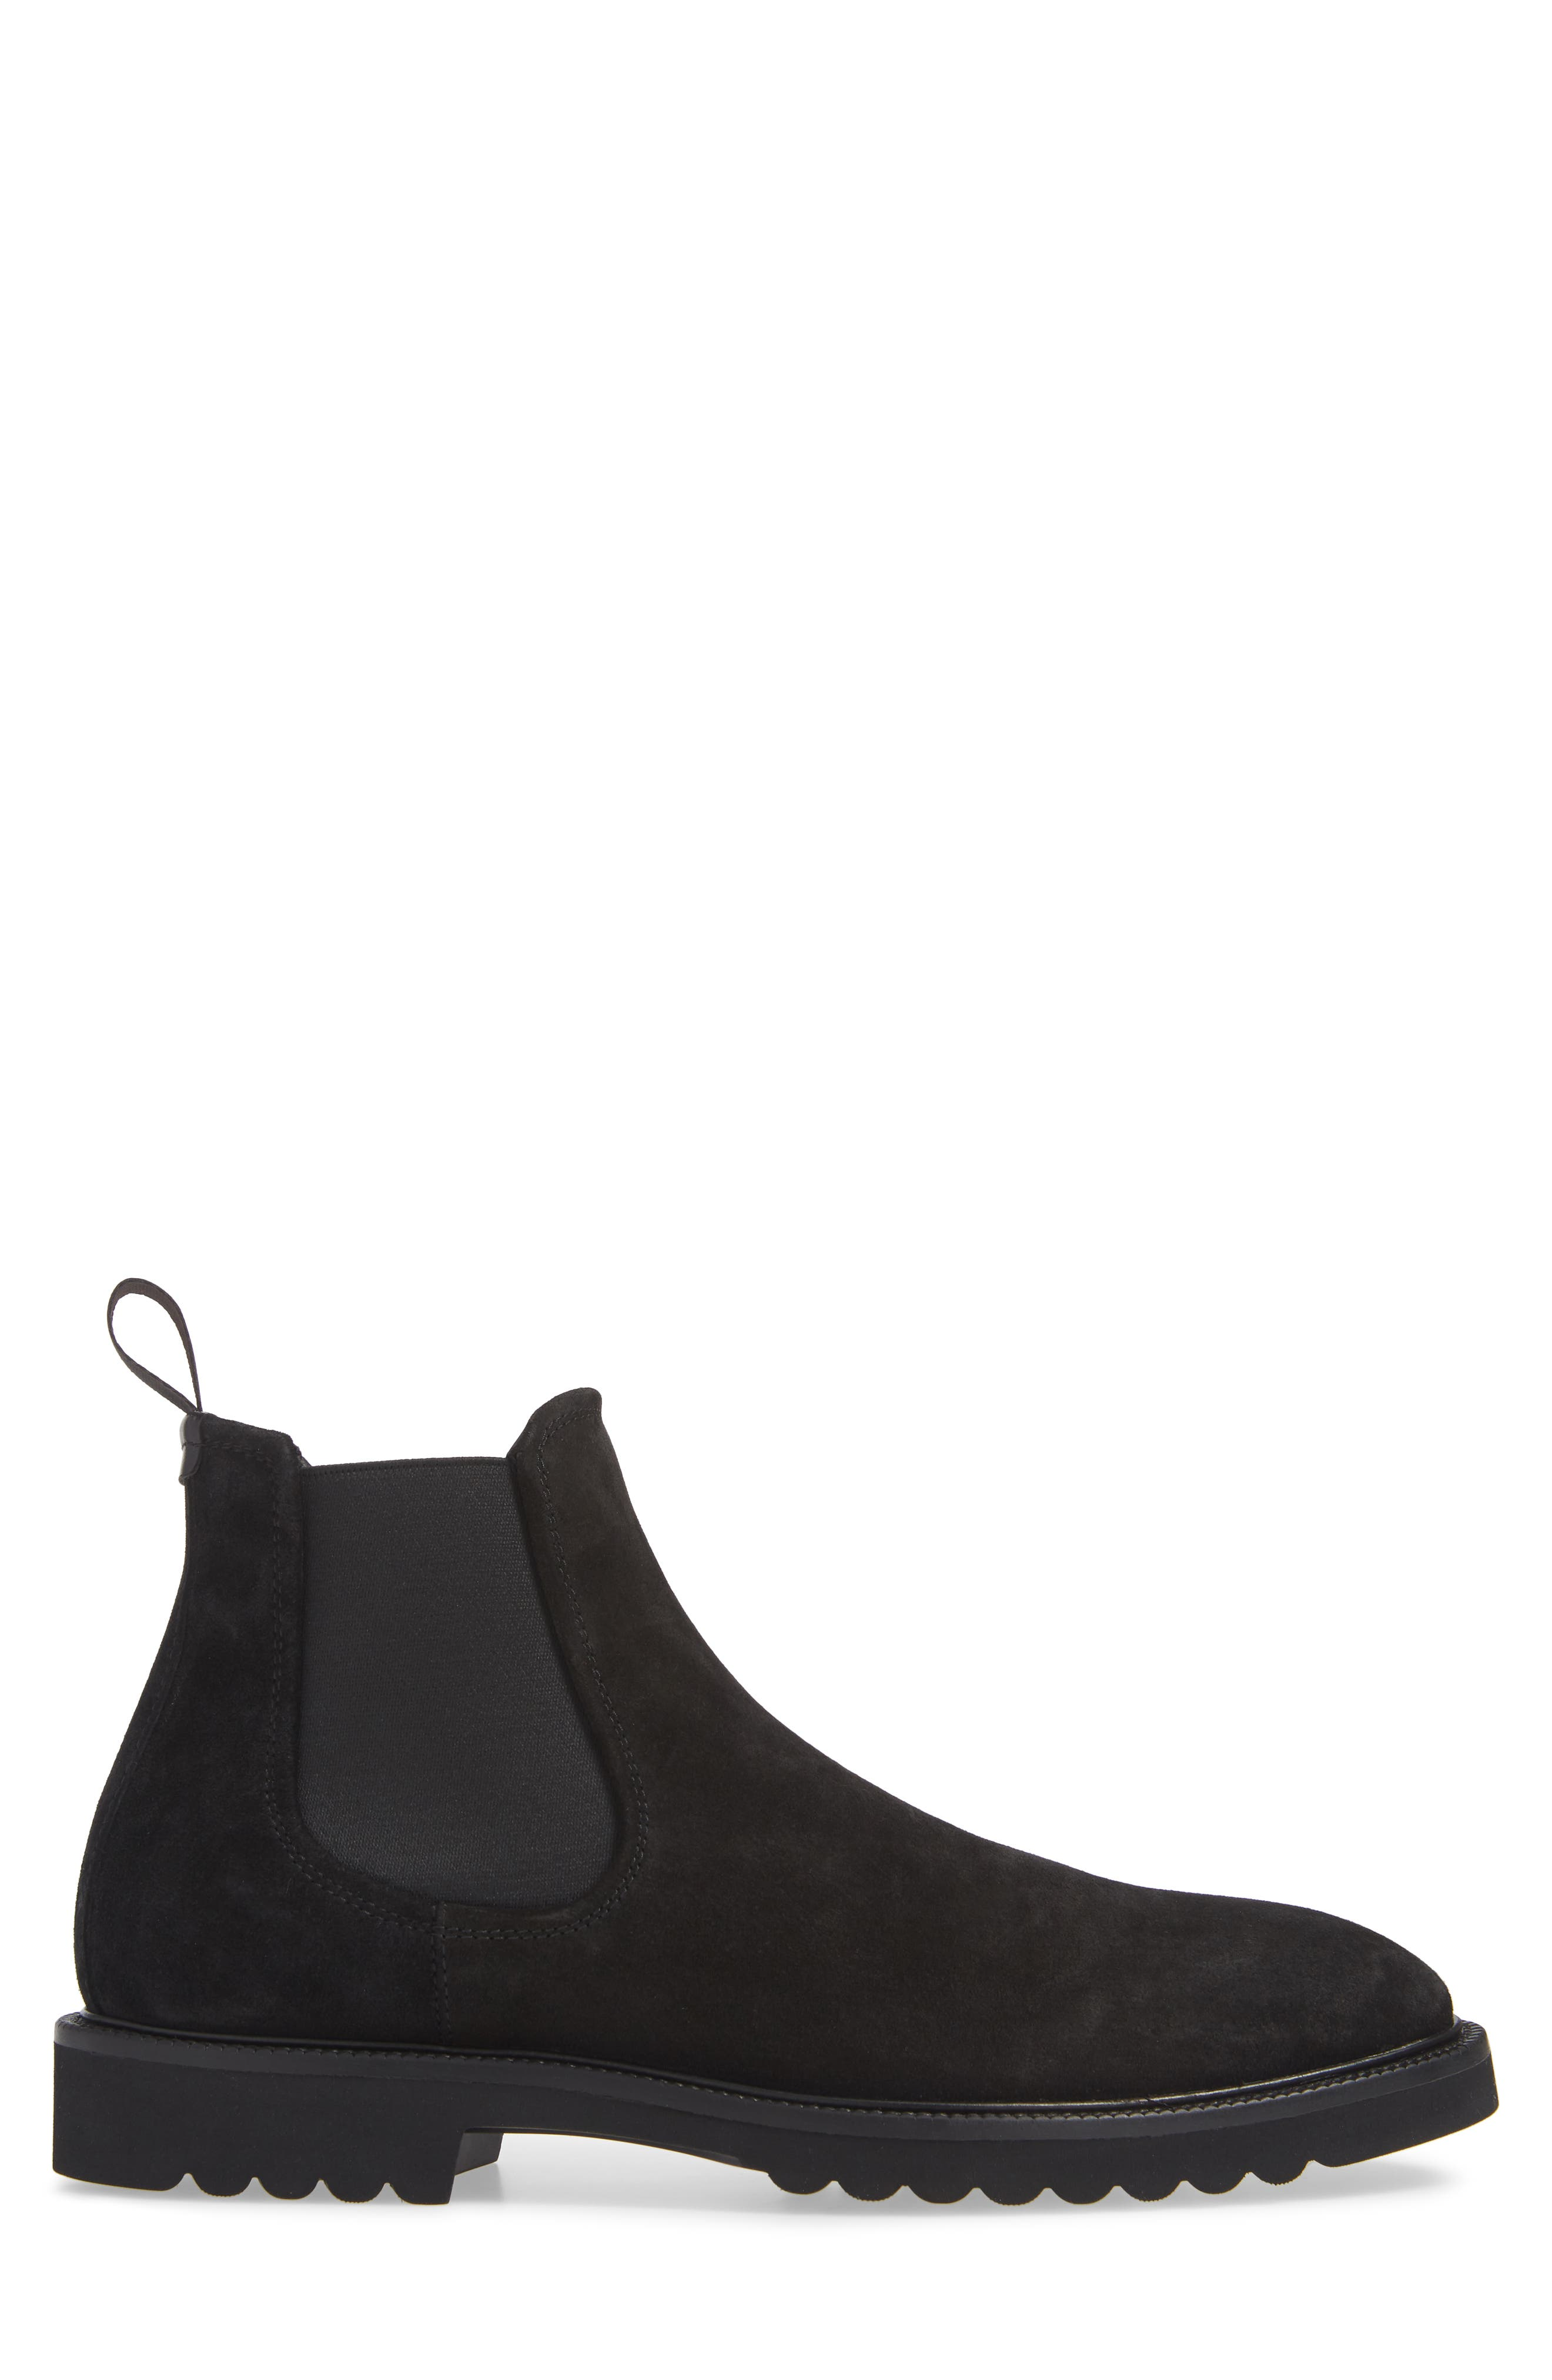 Lugged Chelsea Boot,                             Alternate thumbnail 3, color,                             BLACK LEATHER